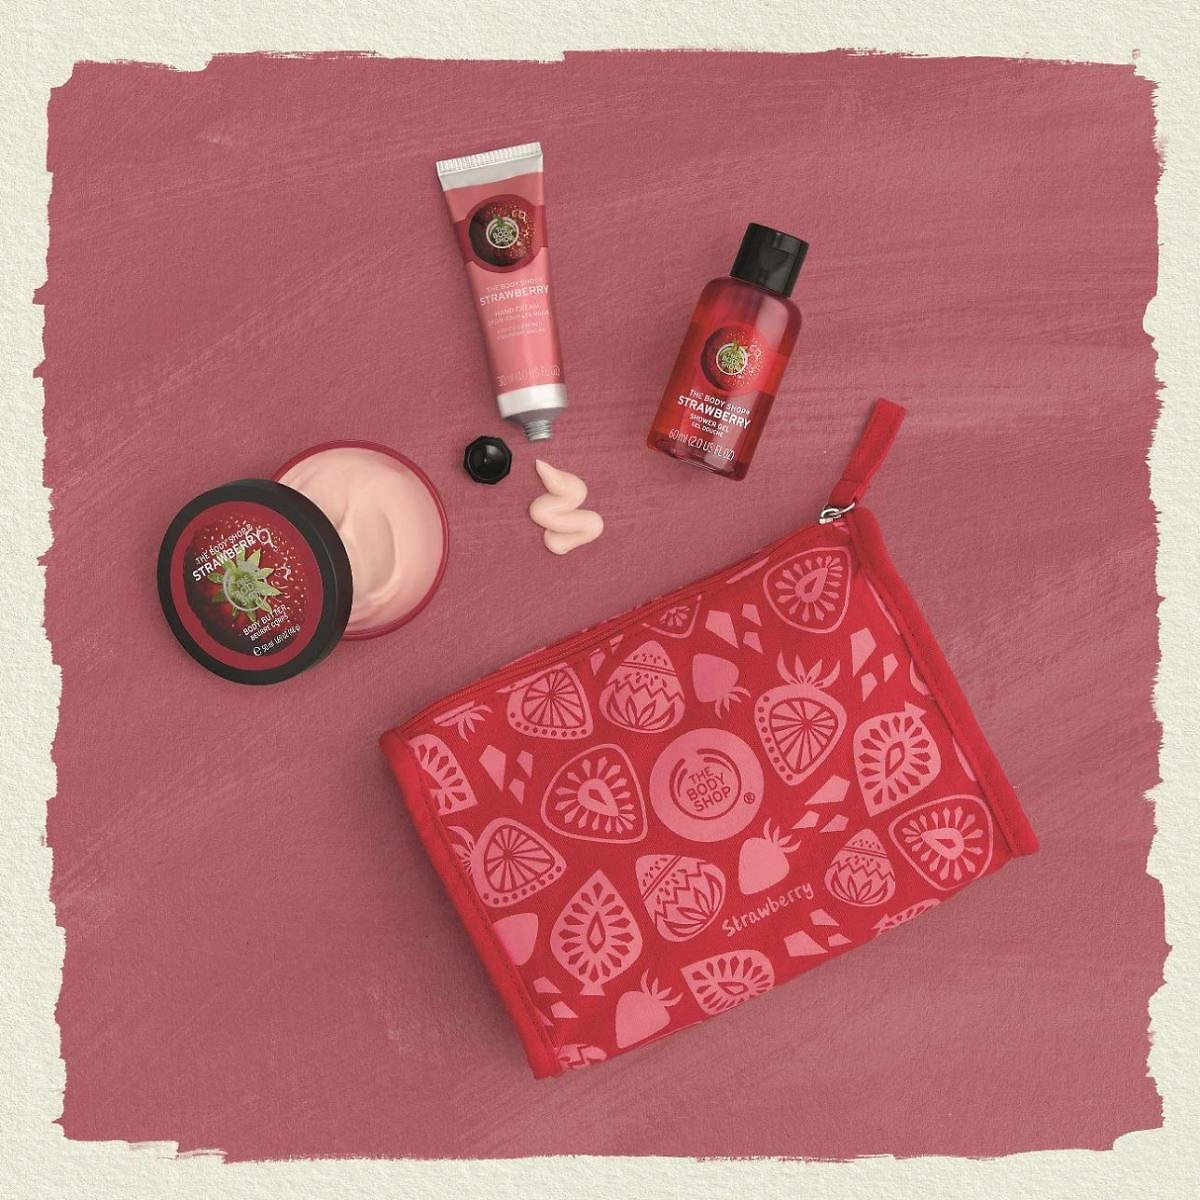 Save 22% | The Body Shop Strawberry Beauty Bag Gift Set, Includes Signature Strawberry Body Butter, Shower Gel, and Hand Cream